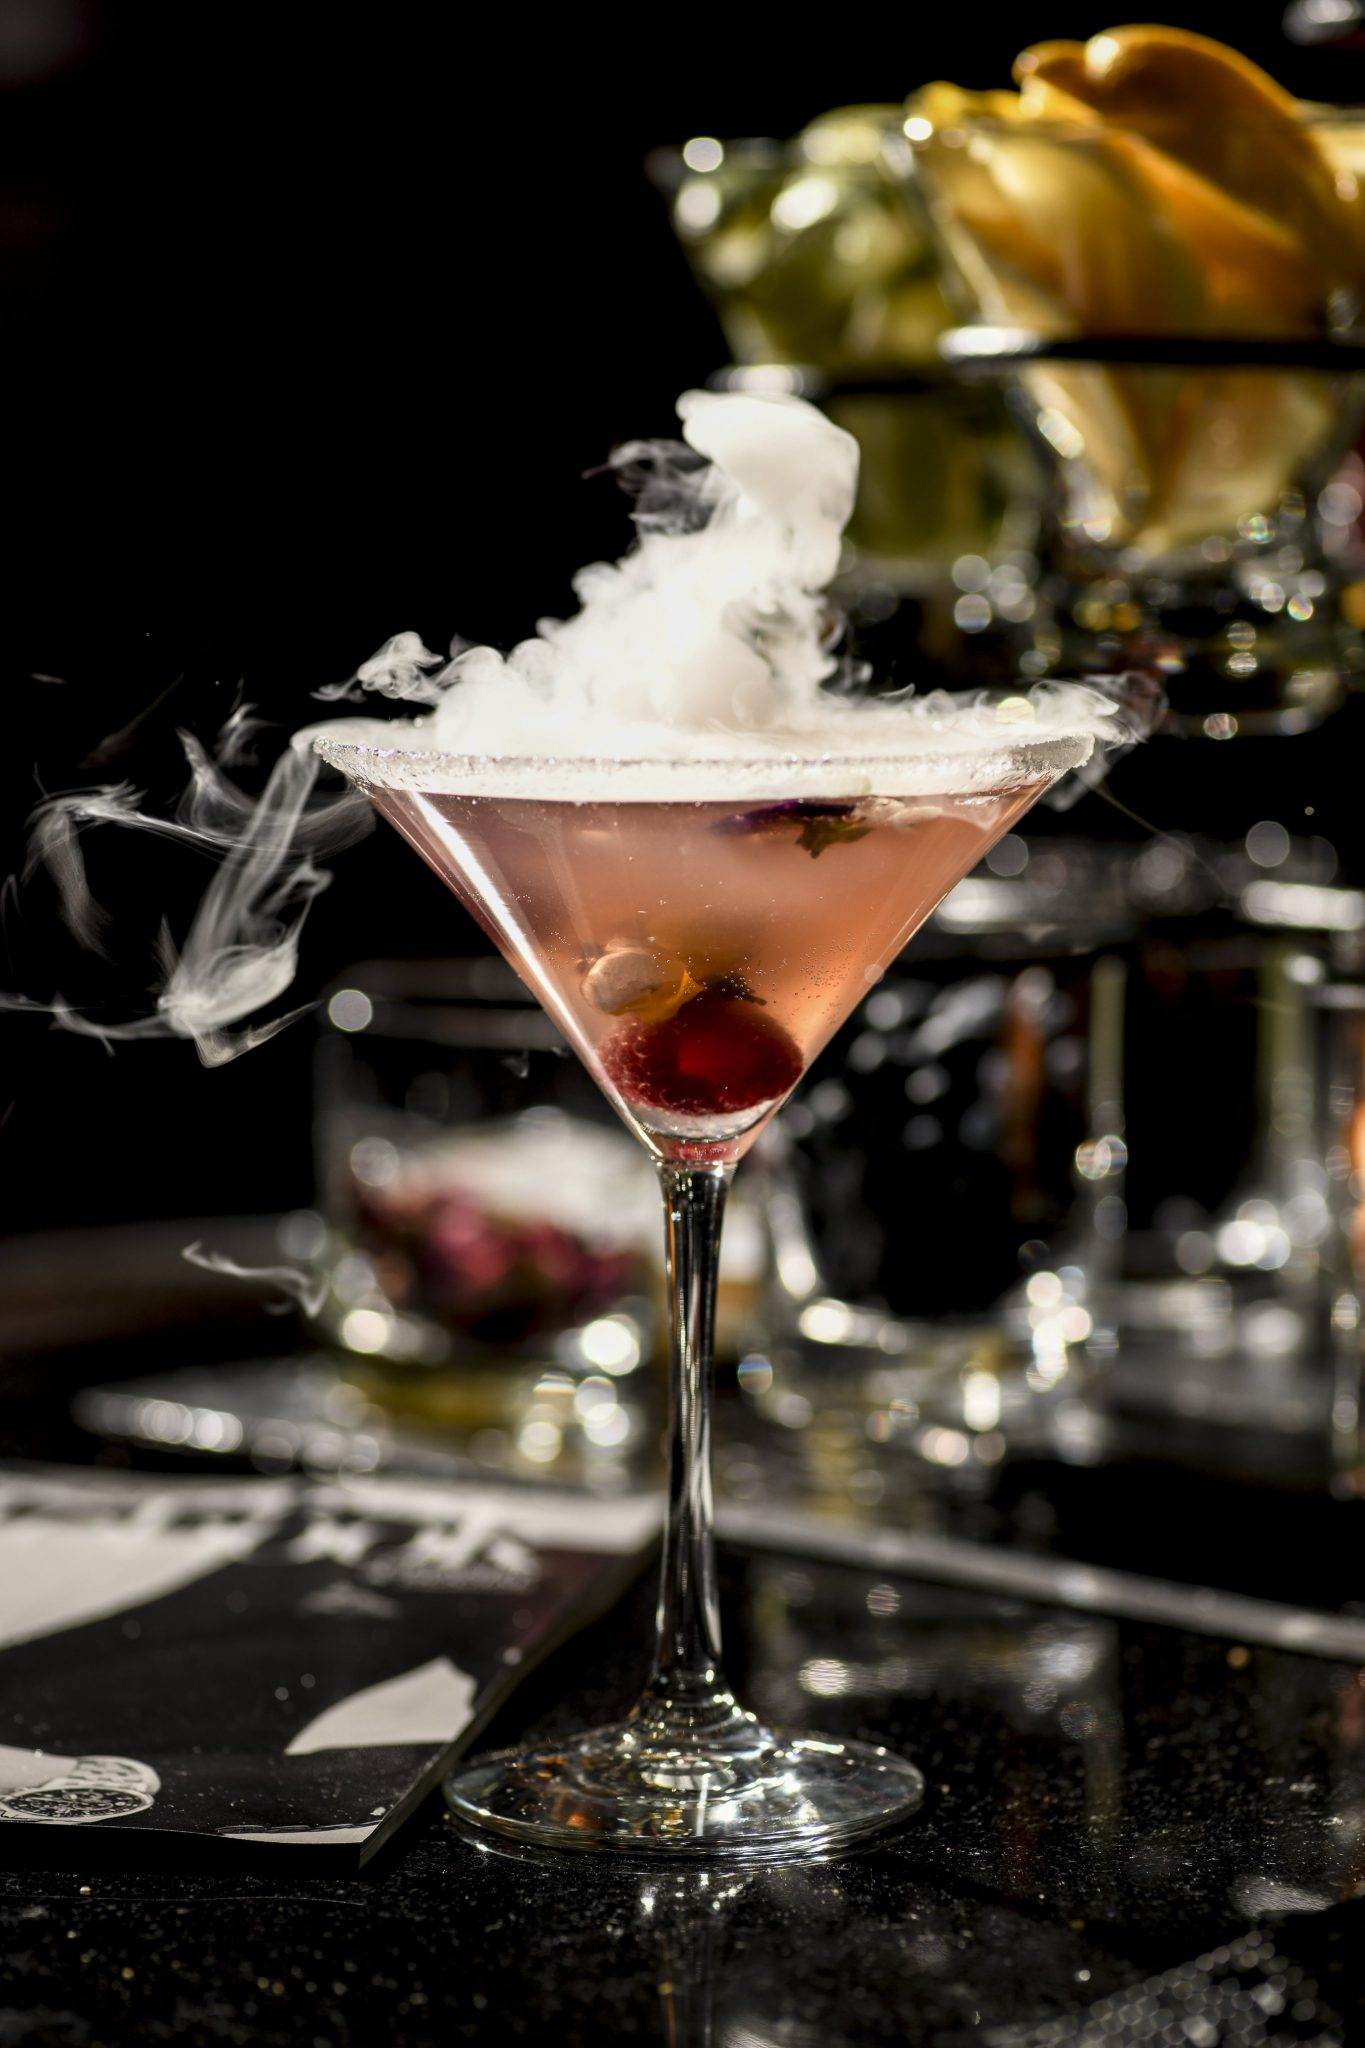 Cocktail in a martini glass with smoke lifting off the top